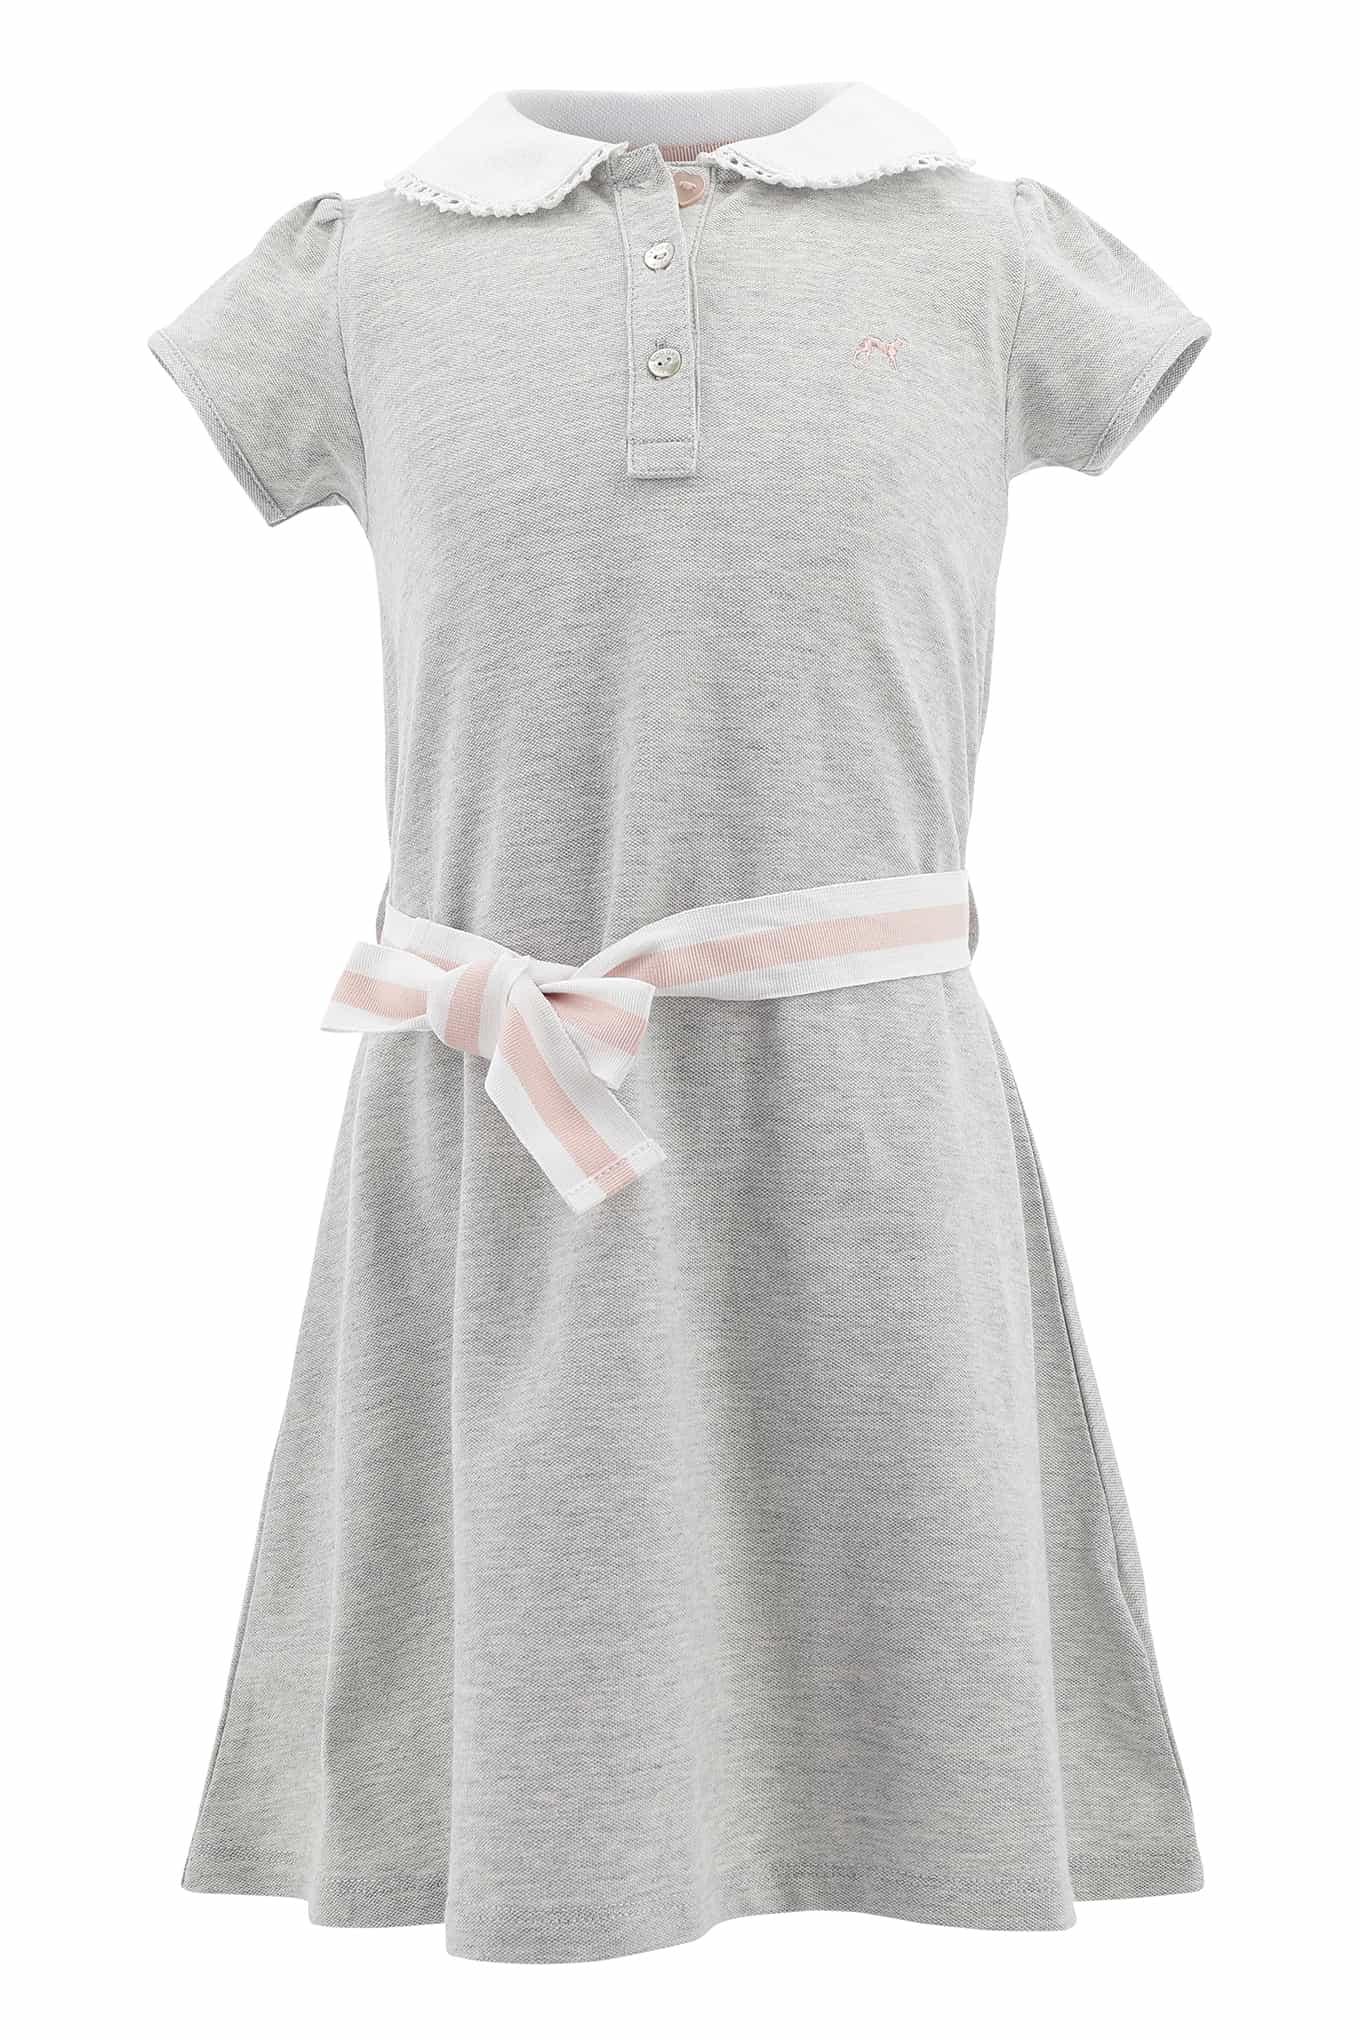 Dress Piquet Light Grey Sport Girl